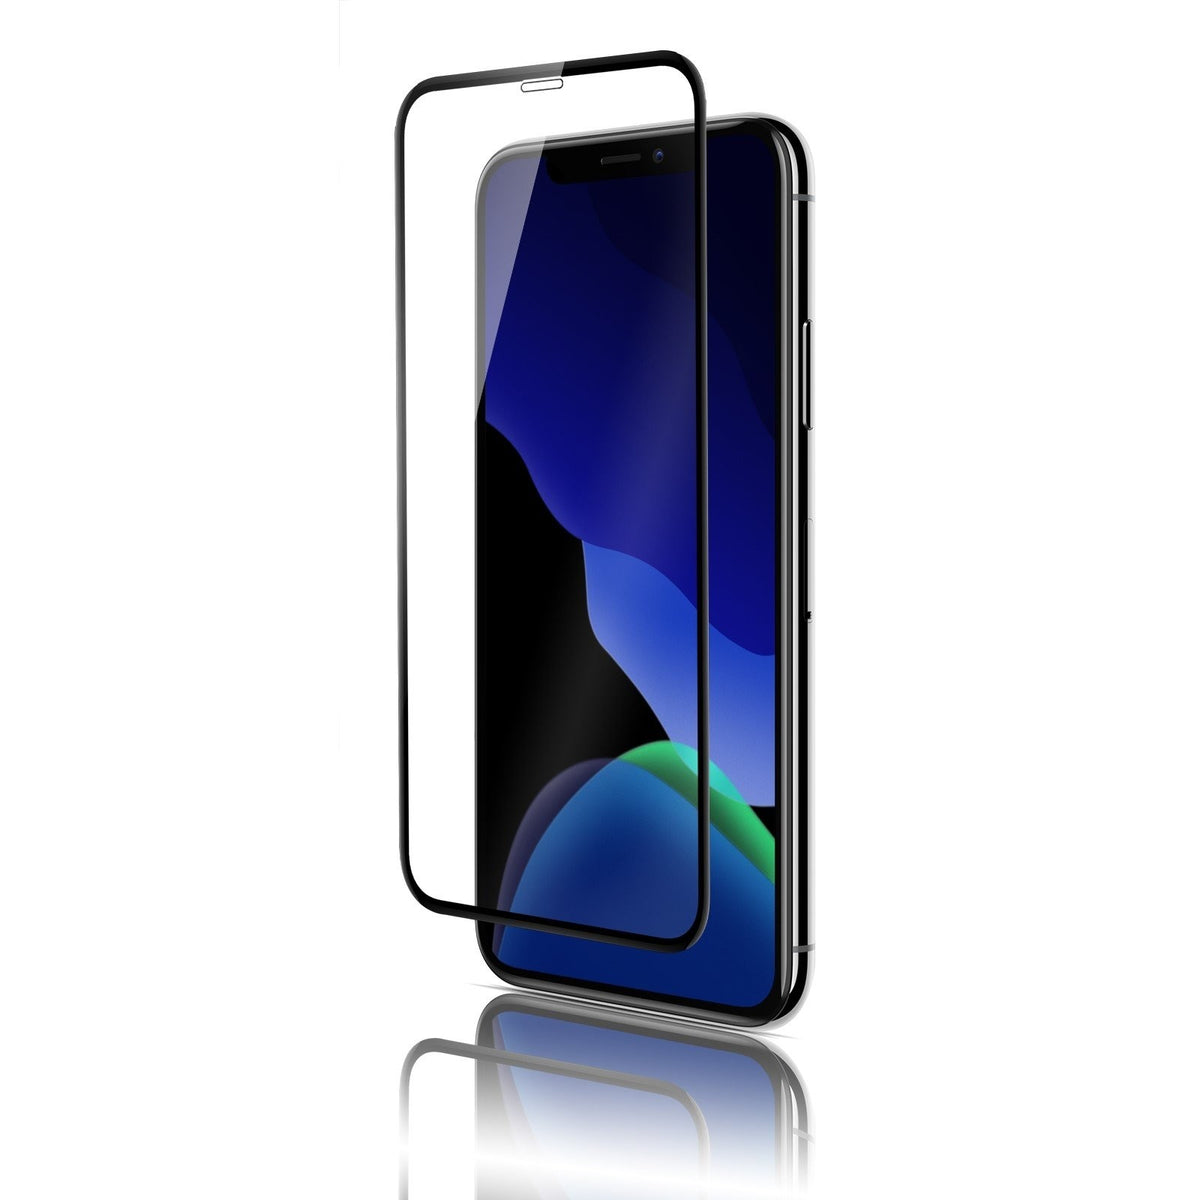 QDOS OptiGuard Glass Curve Black for iPhone 11 Pro Max / Xs Max